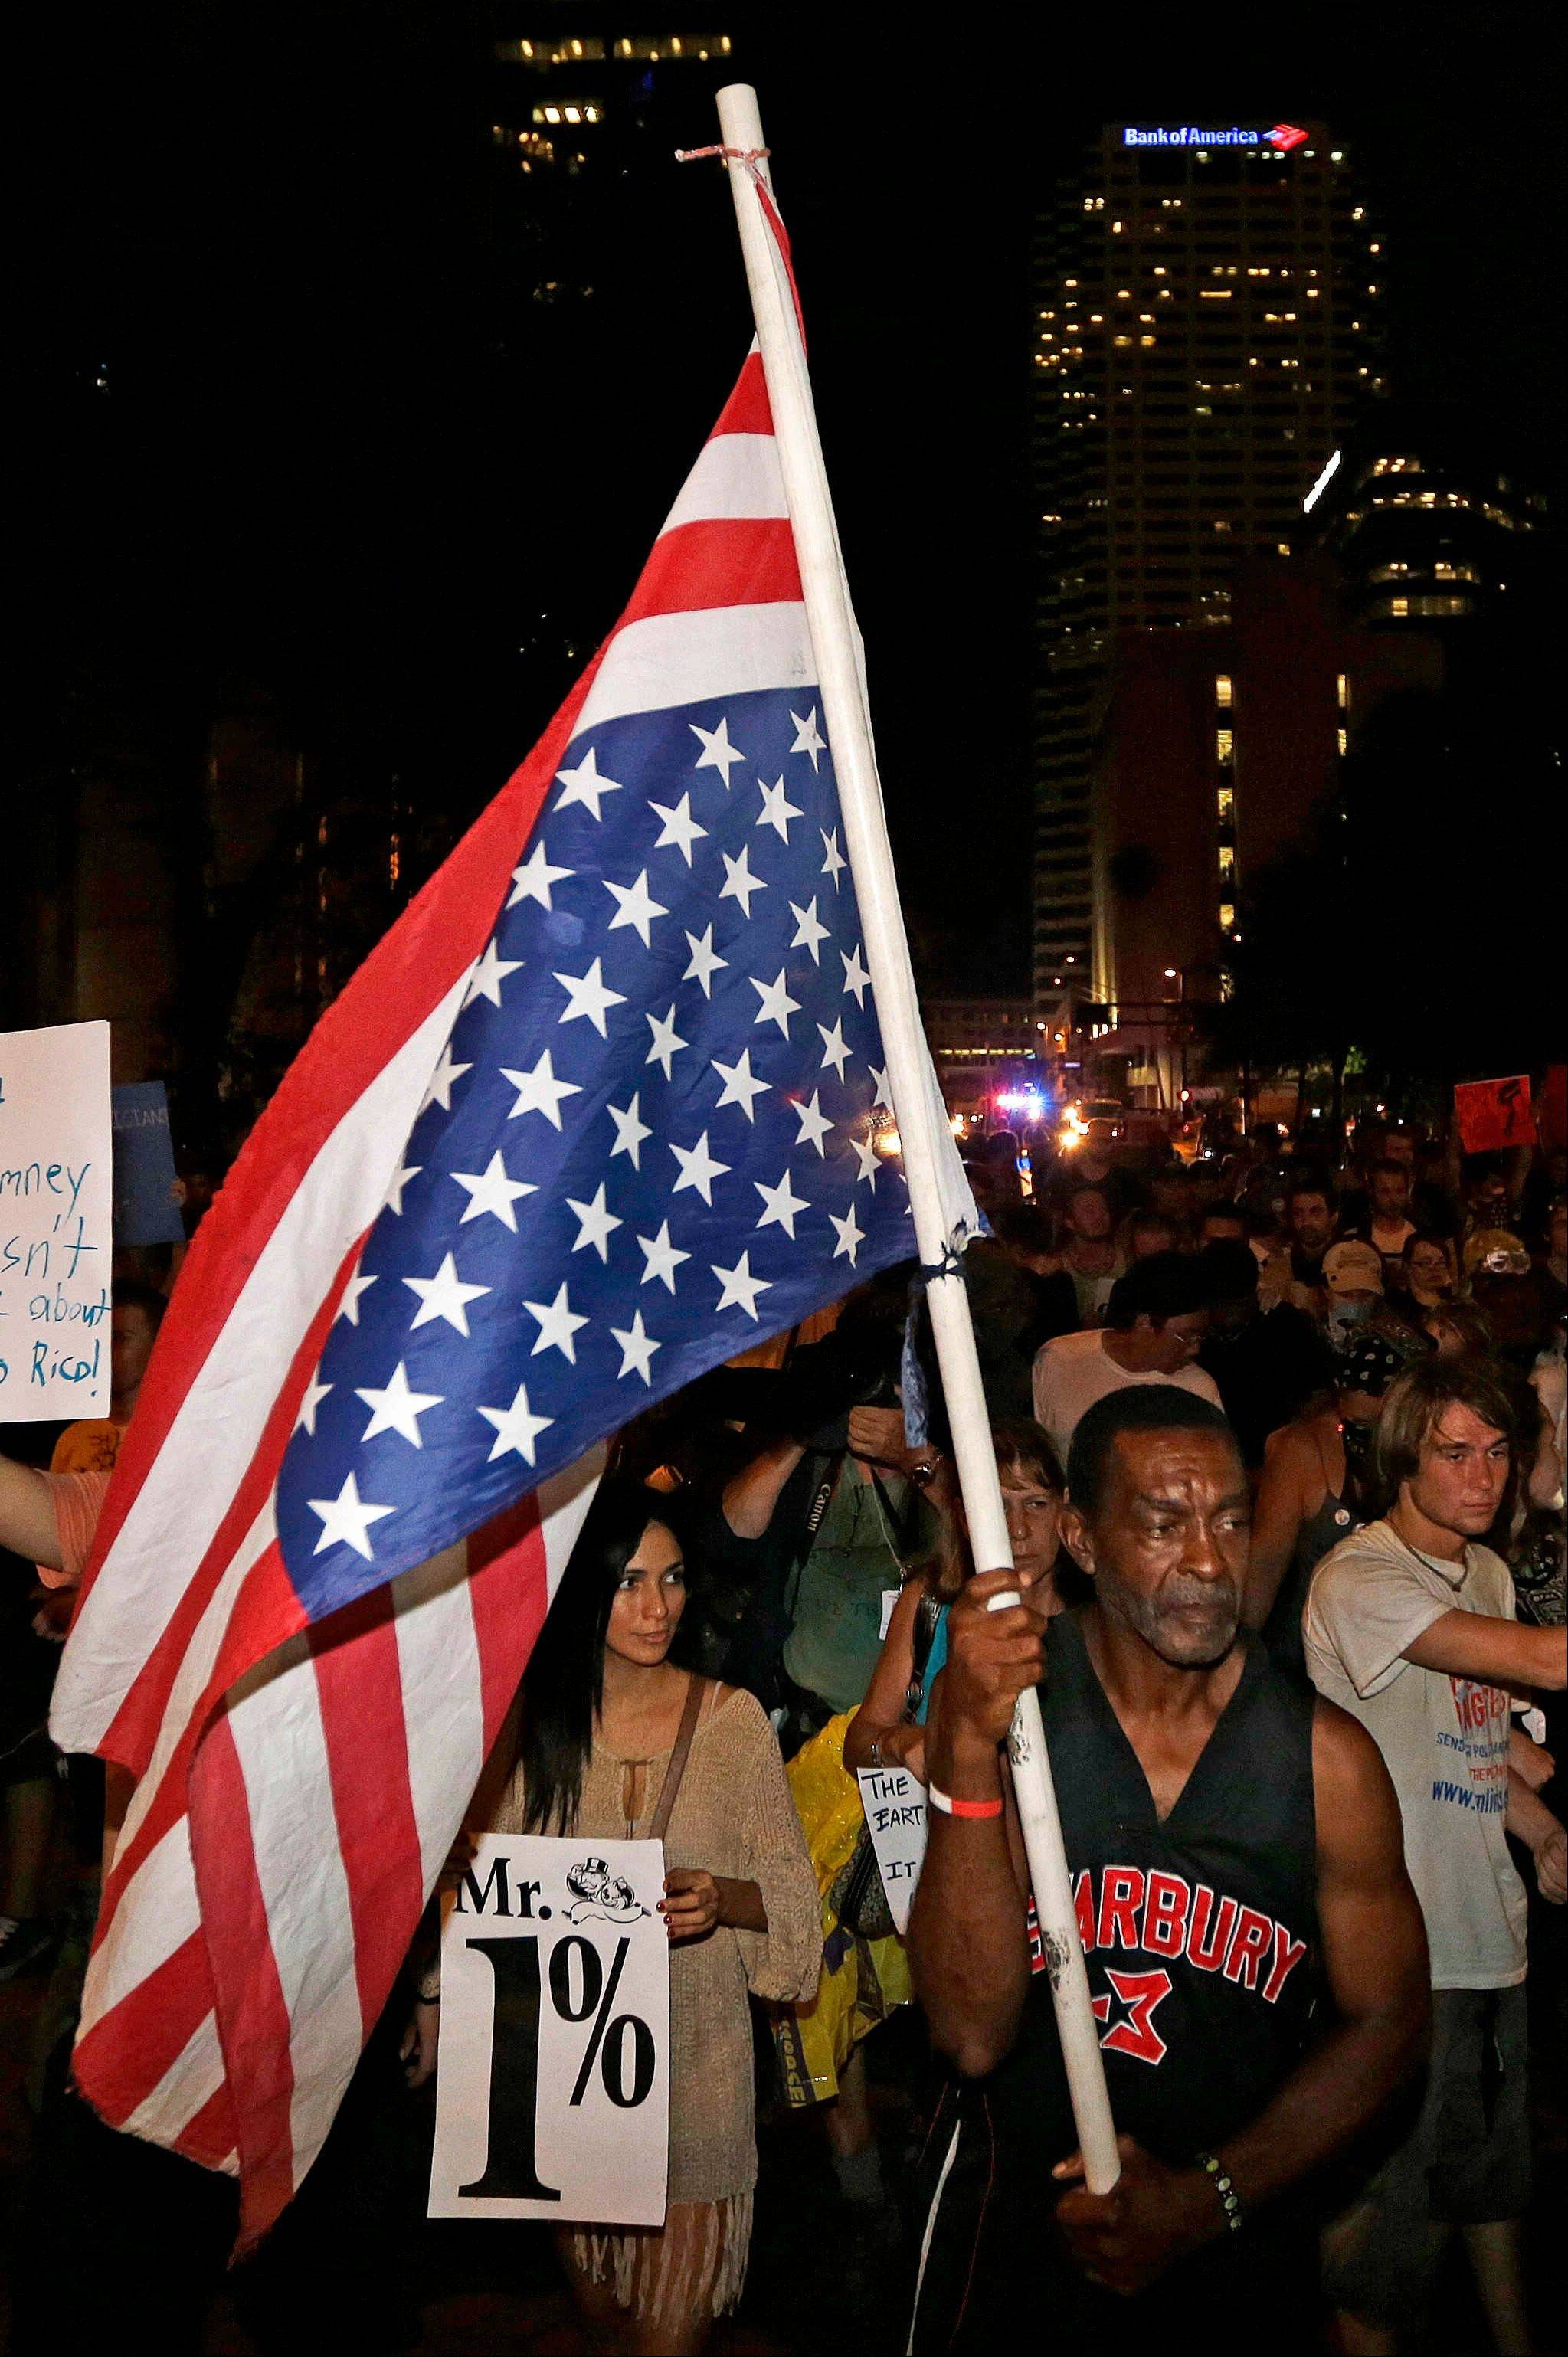 Demonstrators chant during a protest march while using a puppet in the likeness of Mitt Romney, Thursday, Aug. 30, 2012, in Tampa, Fla. Protestors gathered in Tampa to march in demonstration against the Republican National Convention.